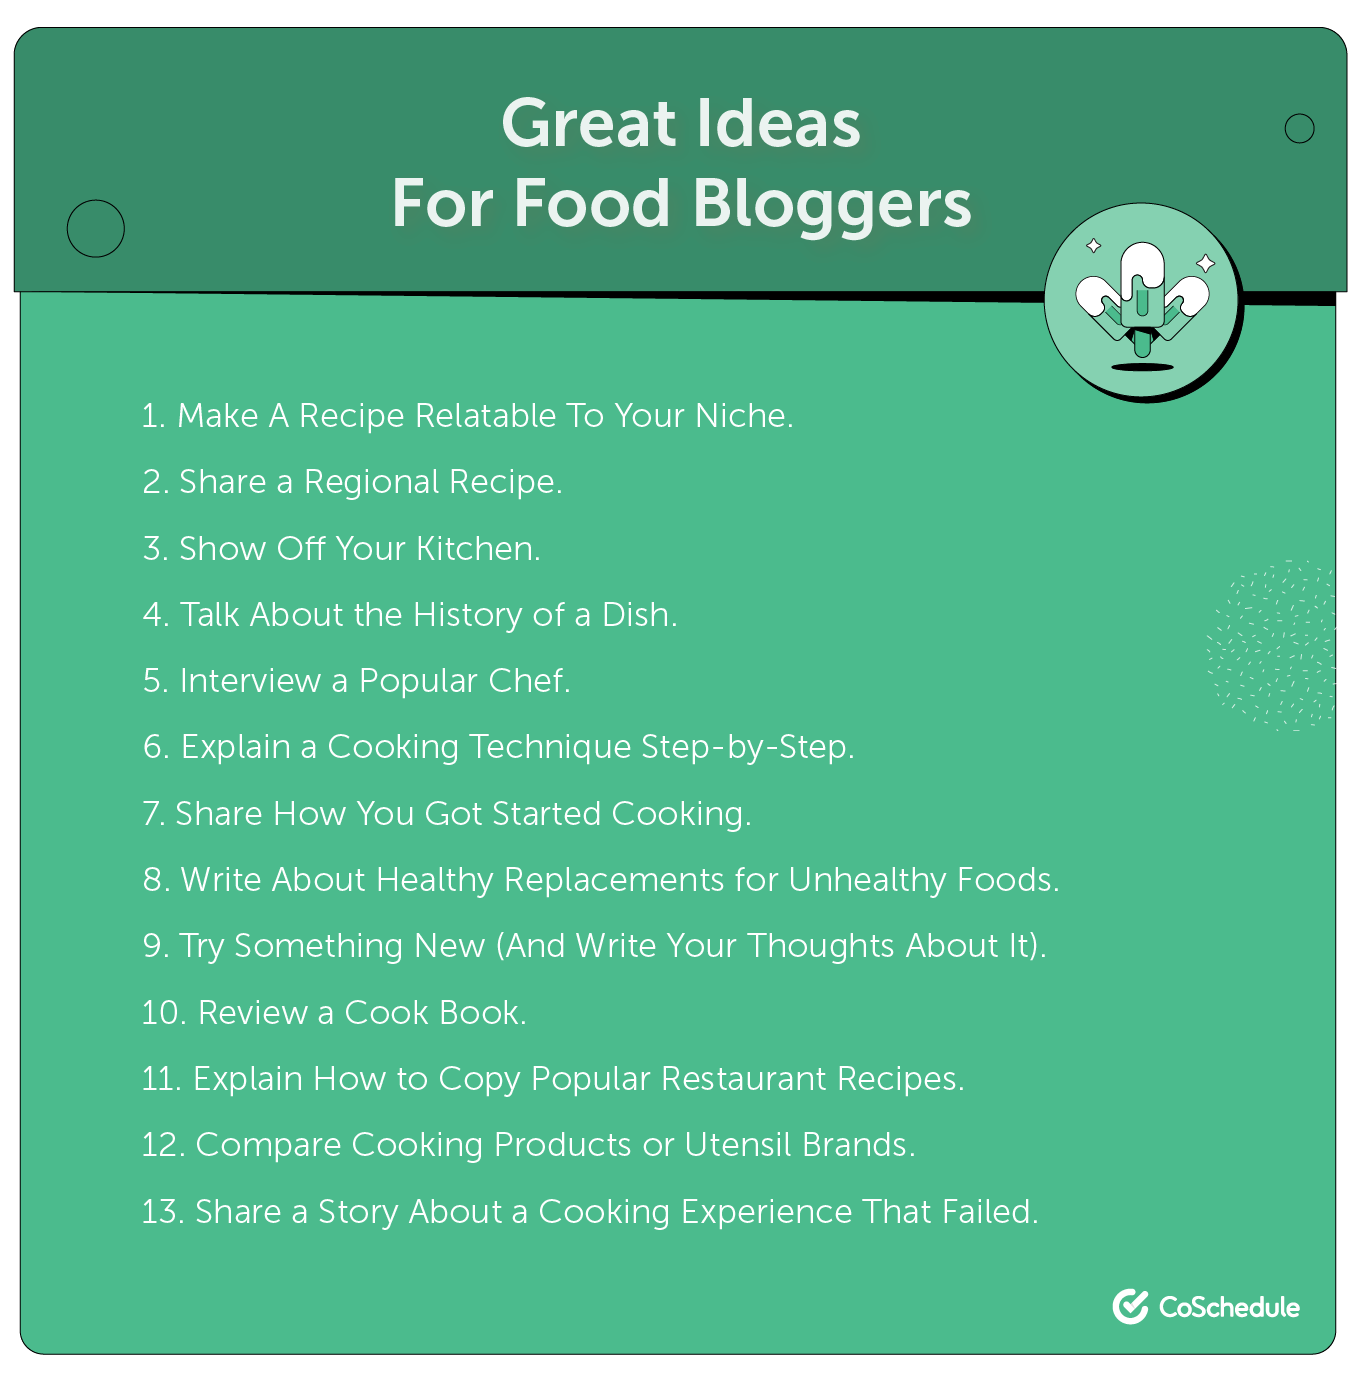 Ideas for food blogging.